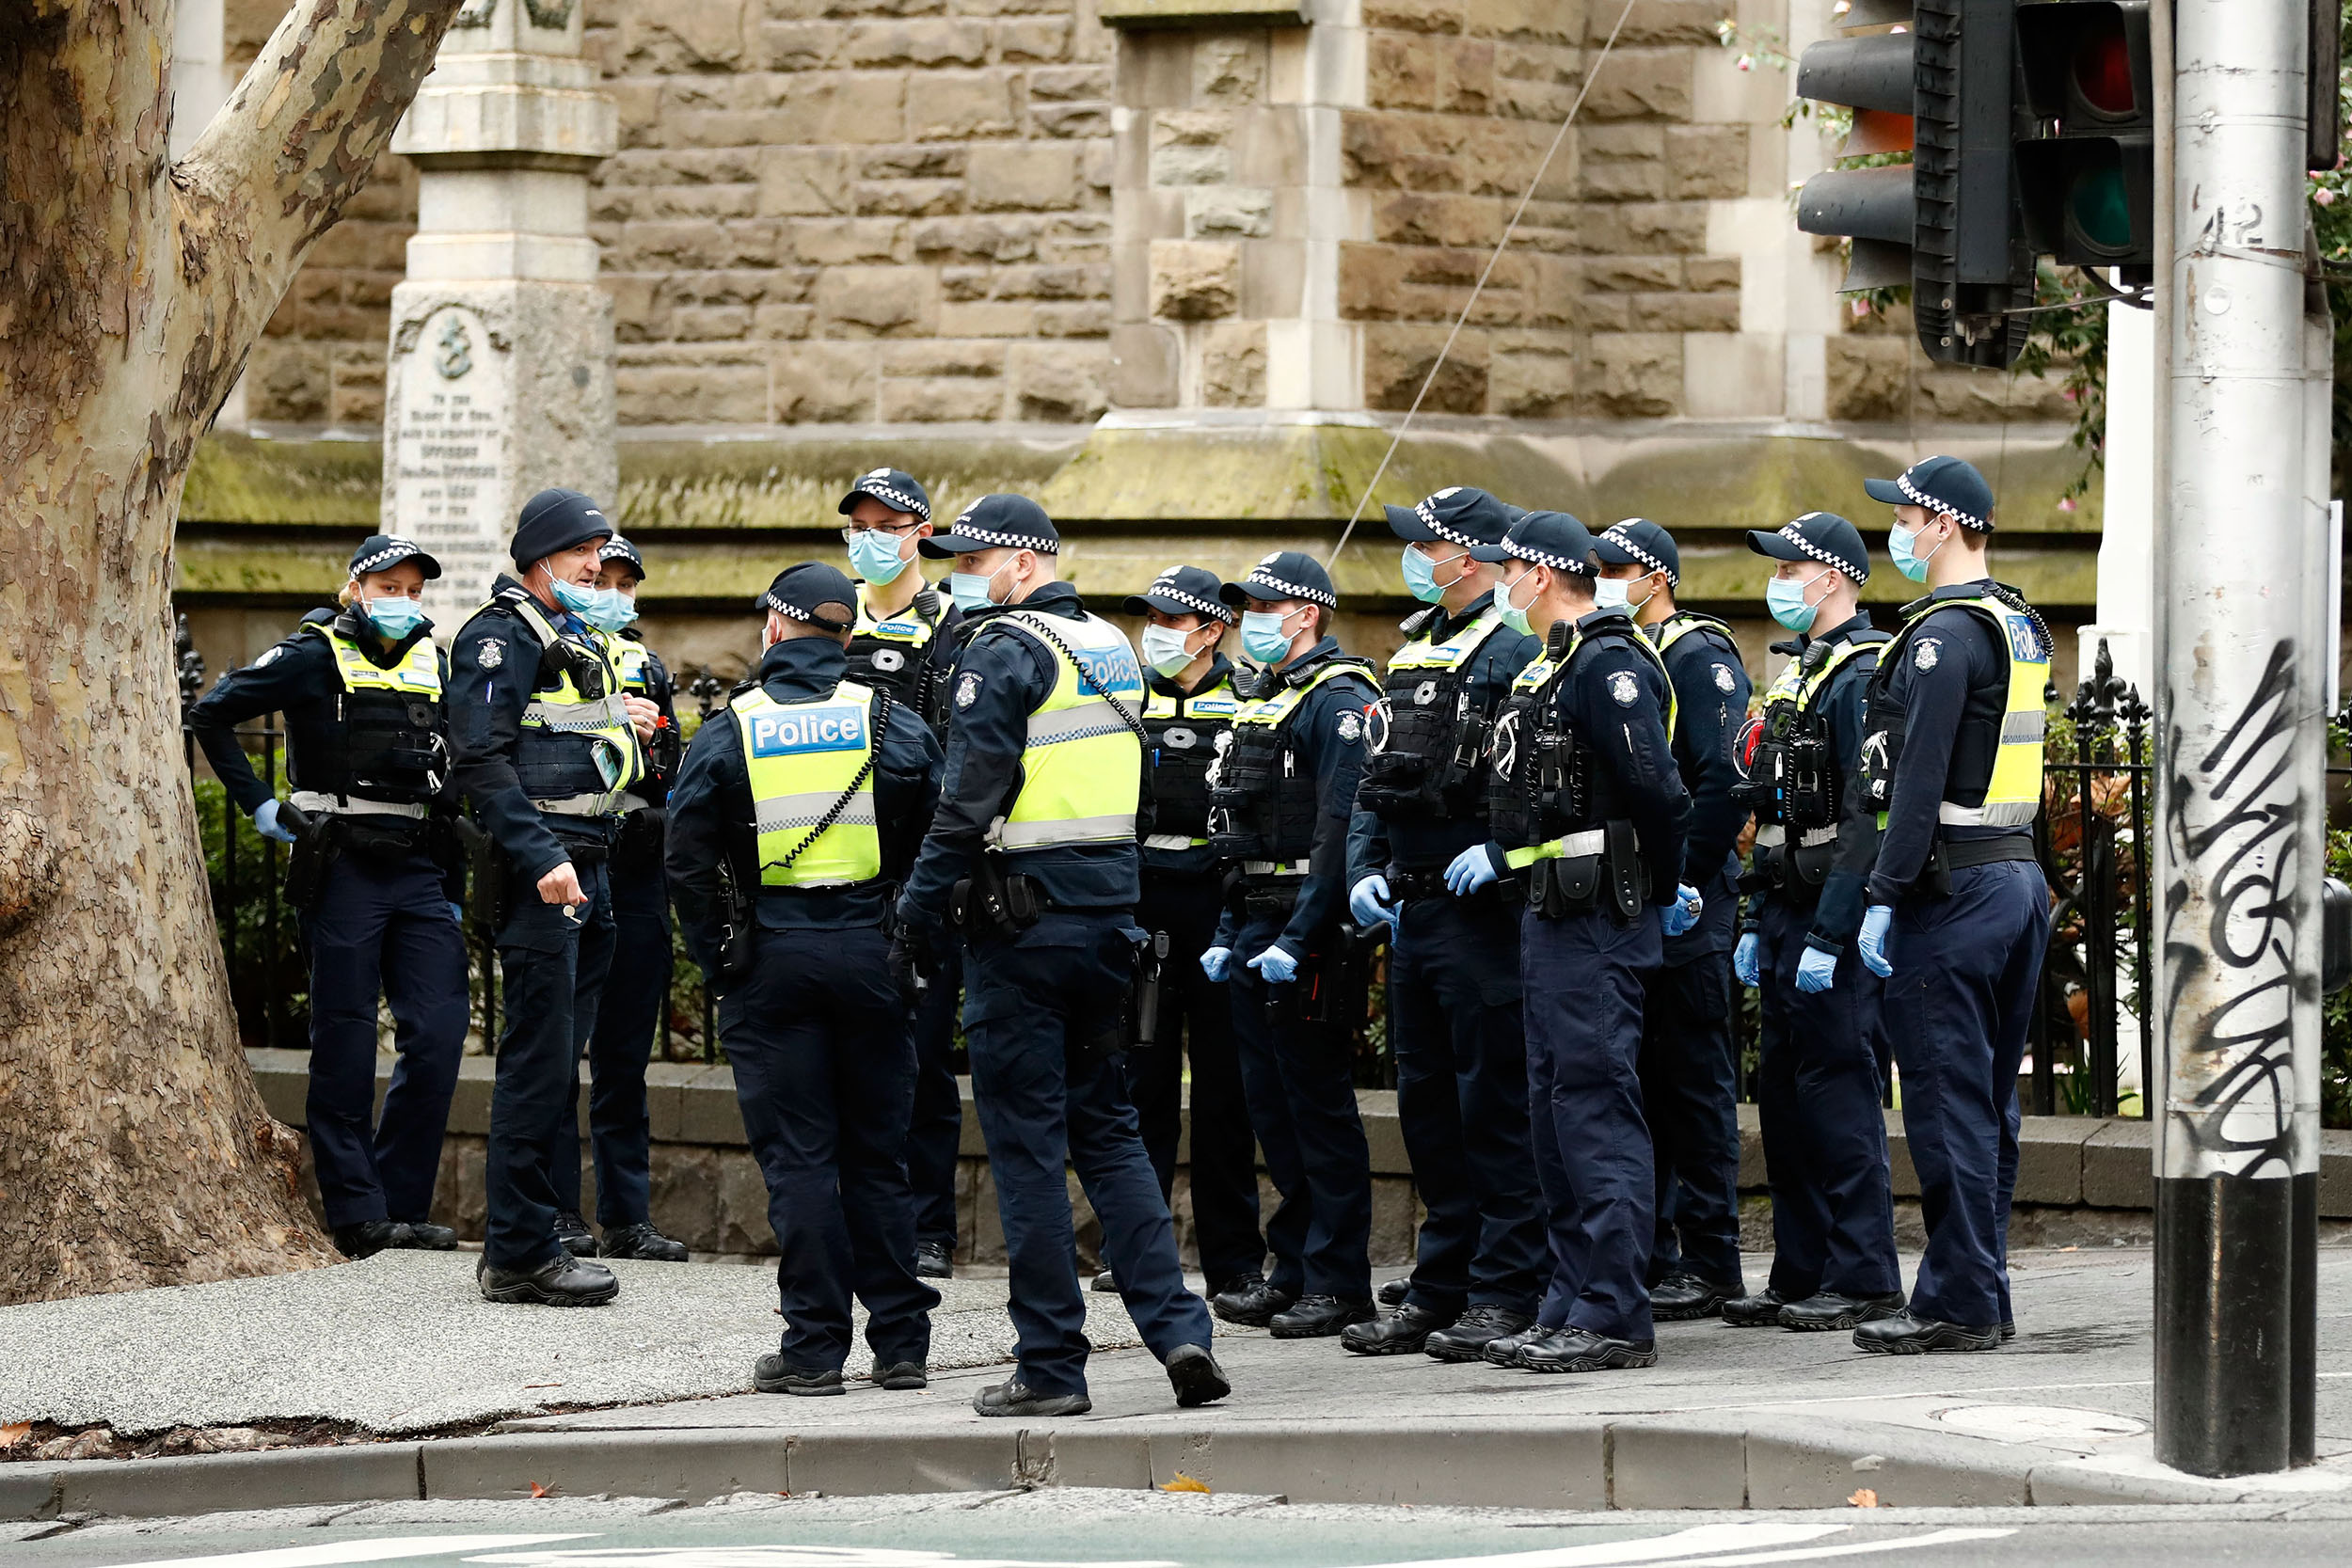 Victoria Police are seen on Wednesday August 5 in Melbourne, Australia, before retail stores closed to customers.